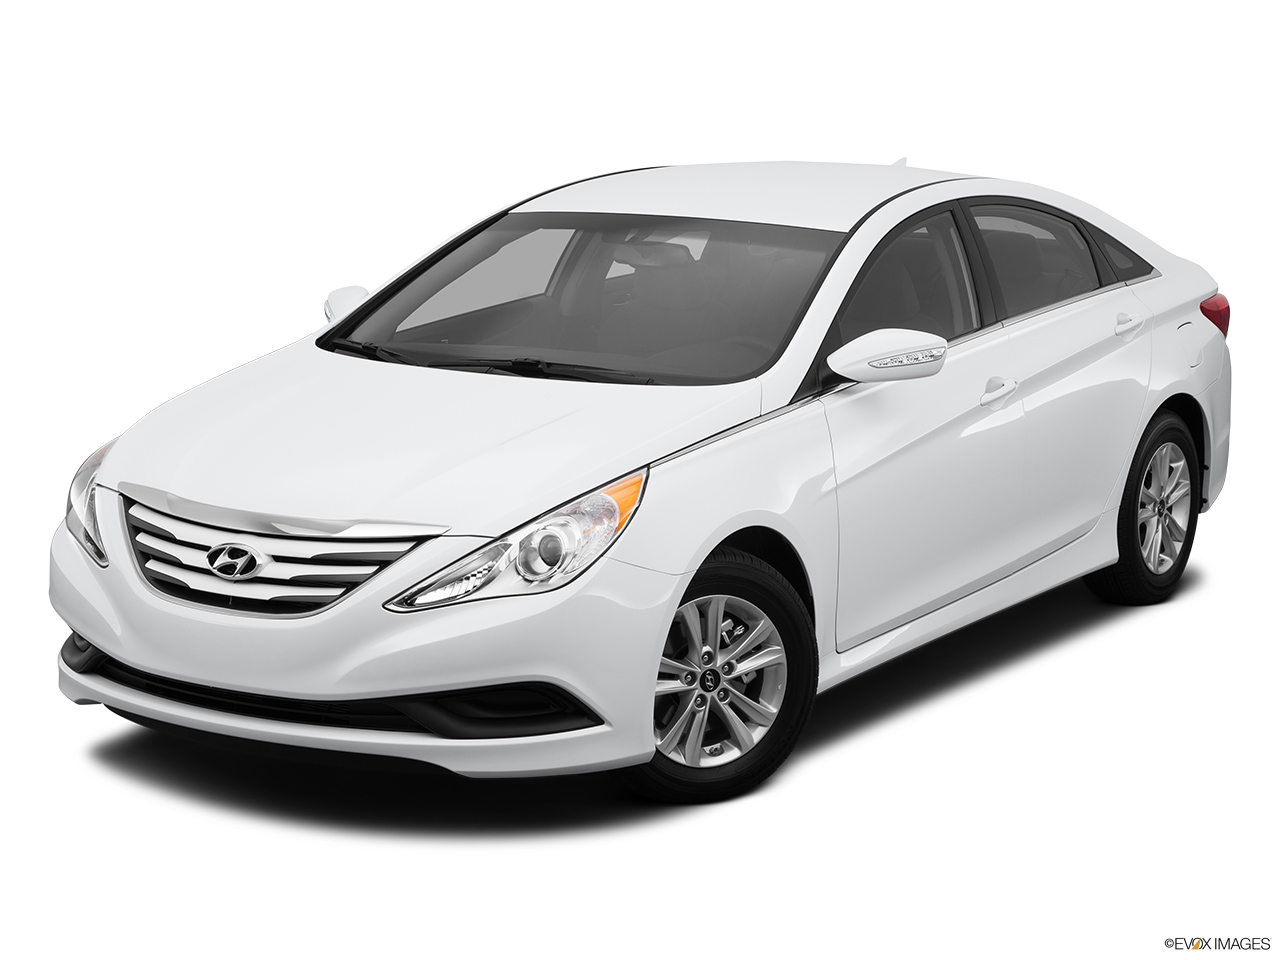 2014 hyundai sonata sedan 2 4l automatic gls. Black Bedroom Furniture Sets. Home Design Ideas